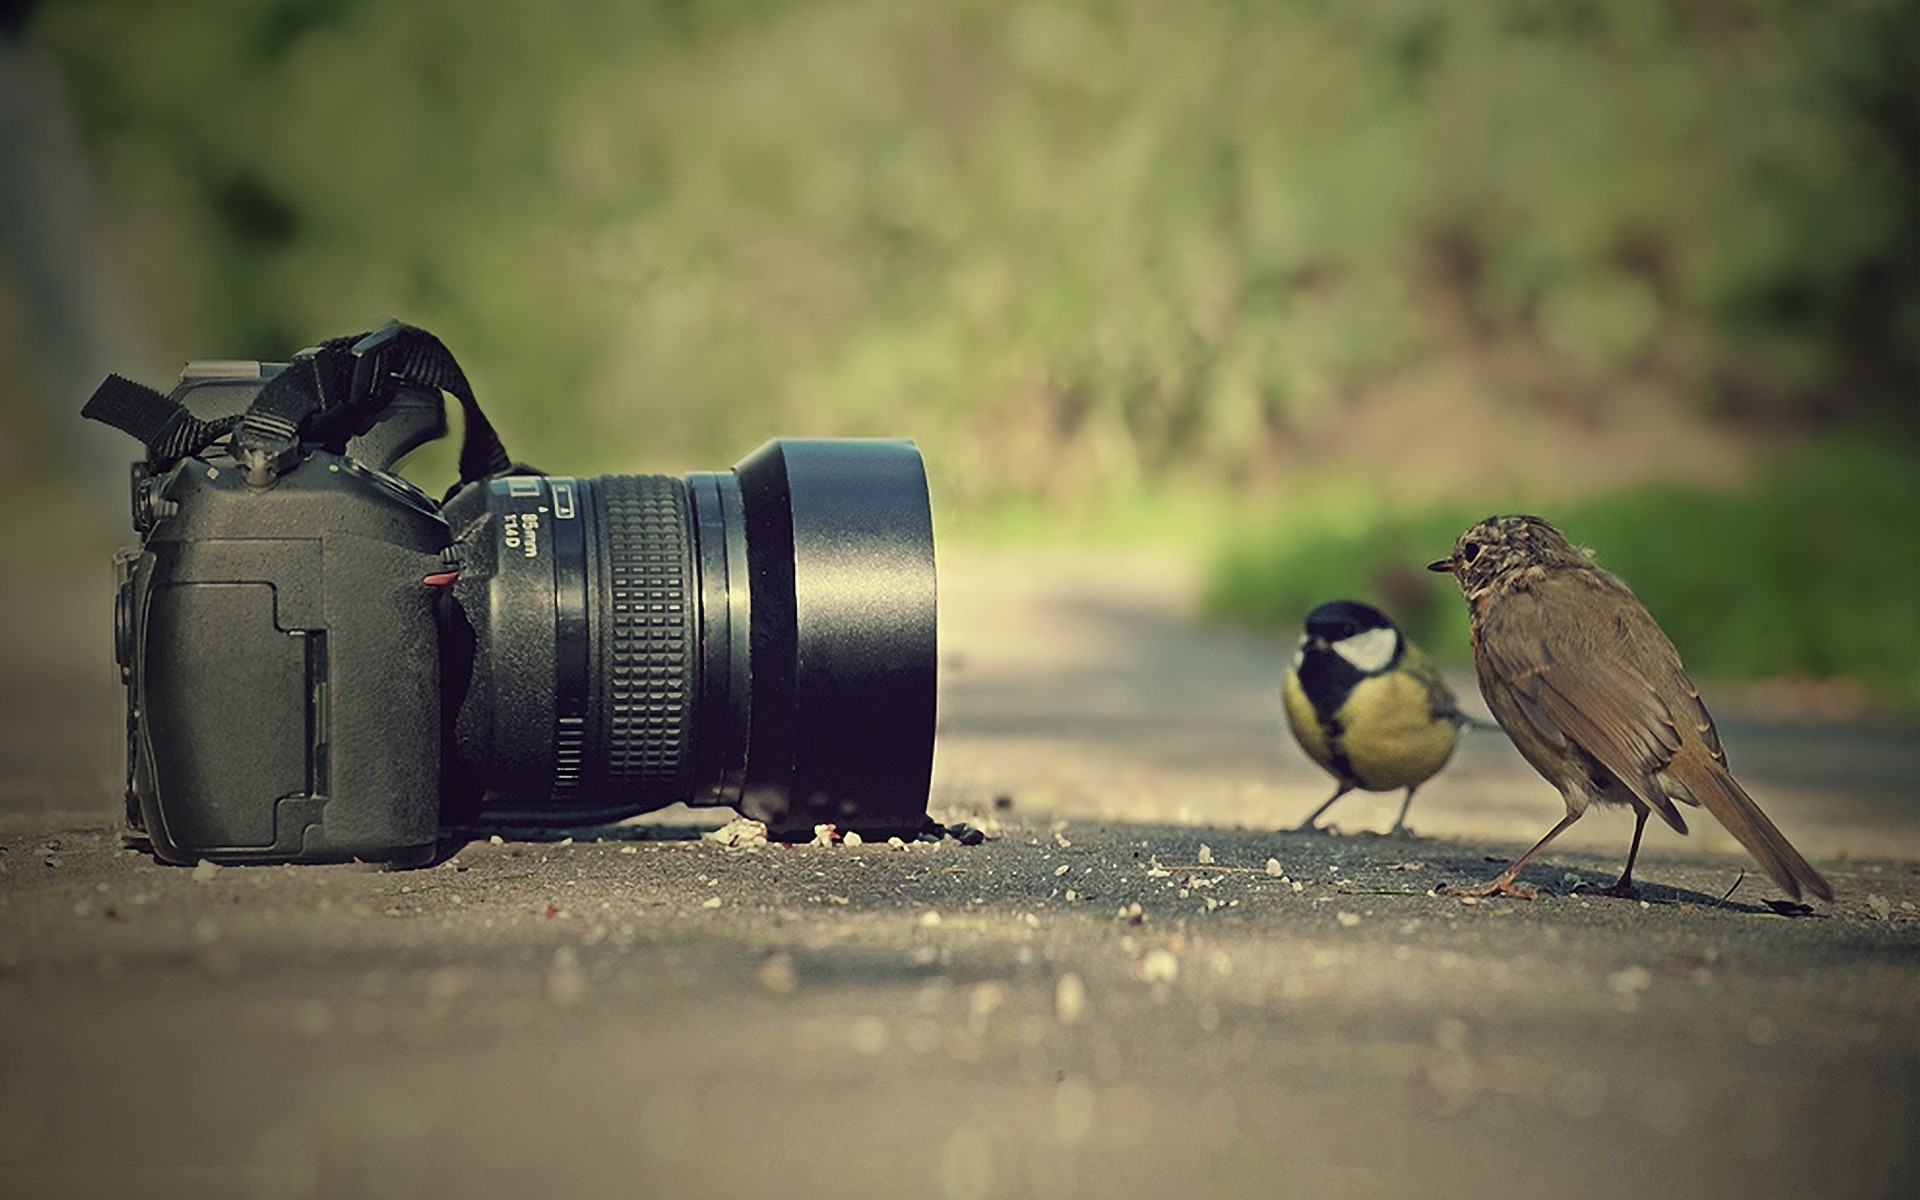 Birds getting photographed